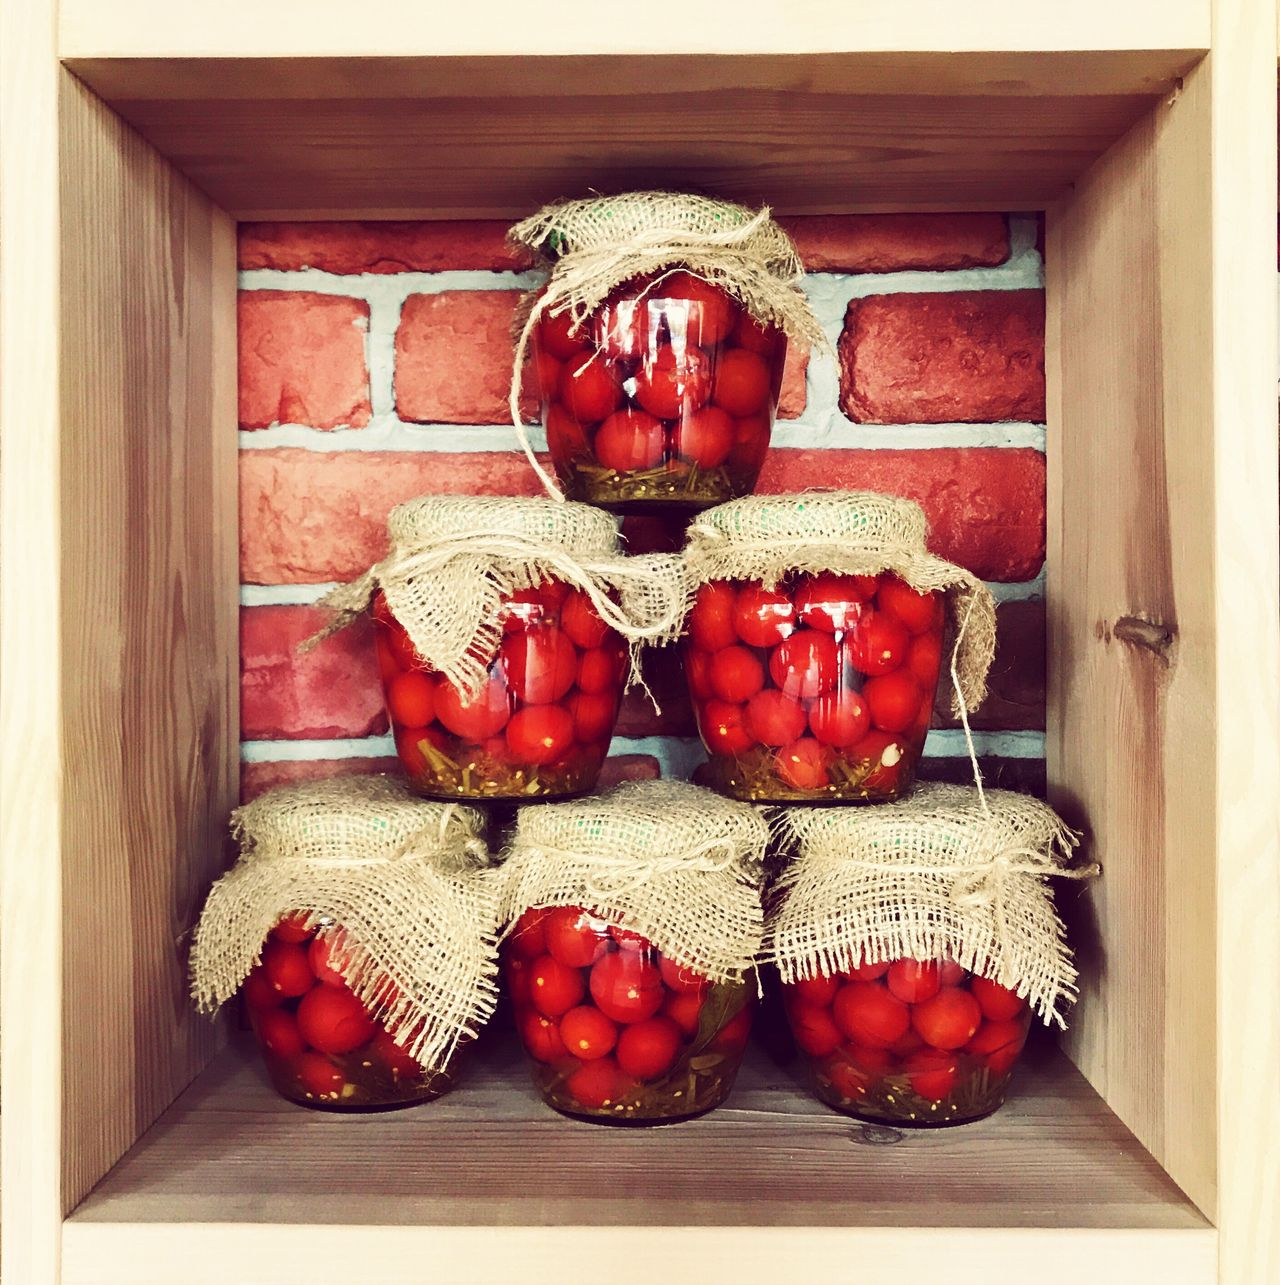 No People Indoors  Home Interior Tradition Red Close-up Food Jars  Tomato Tomatoes Vegetables Decoration Country Life Country Country Style